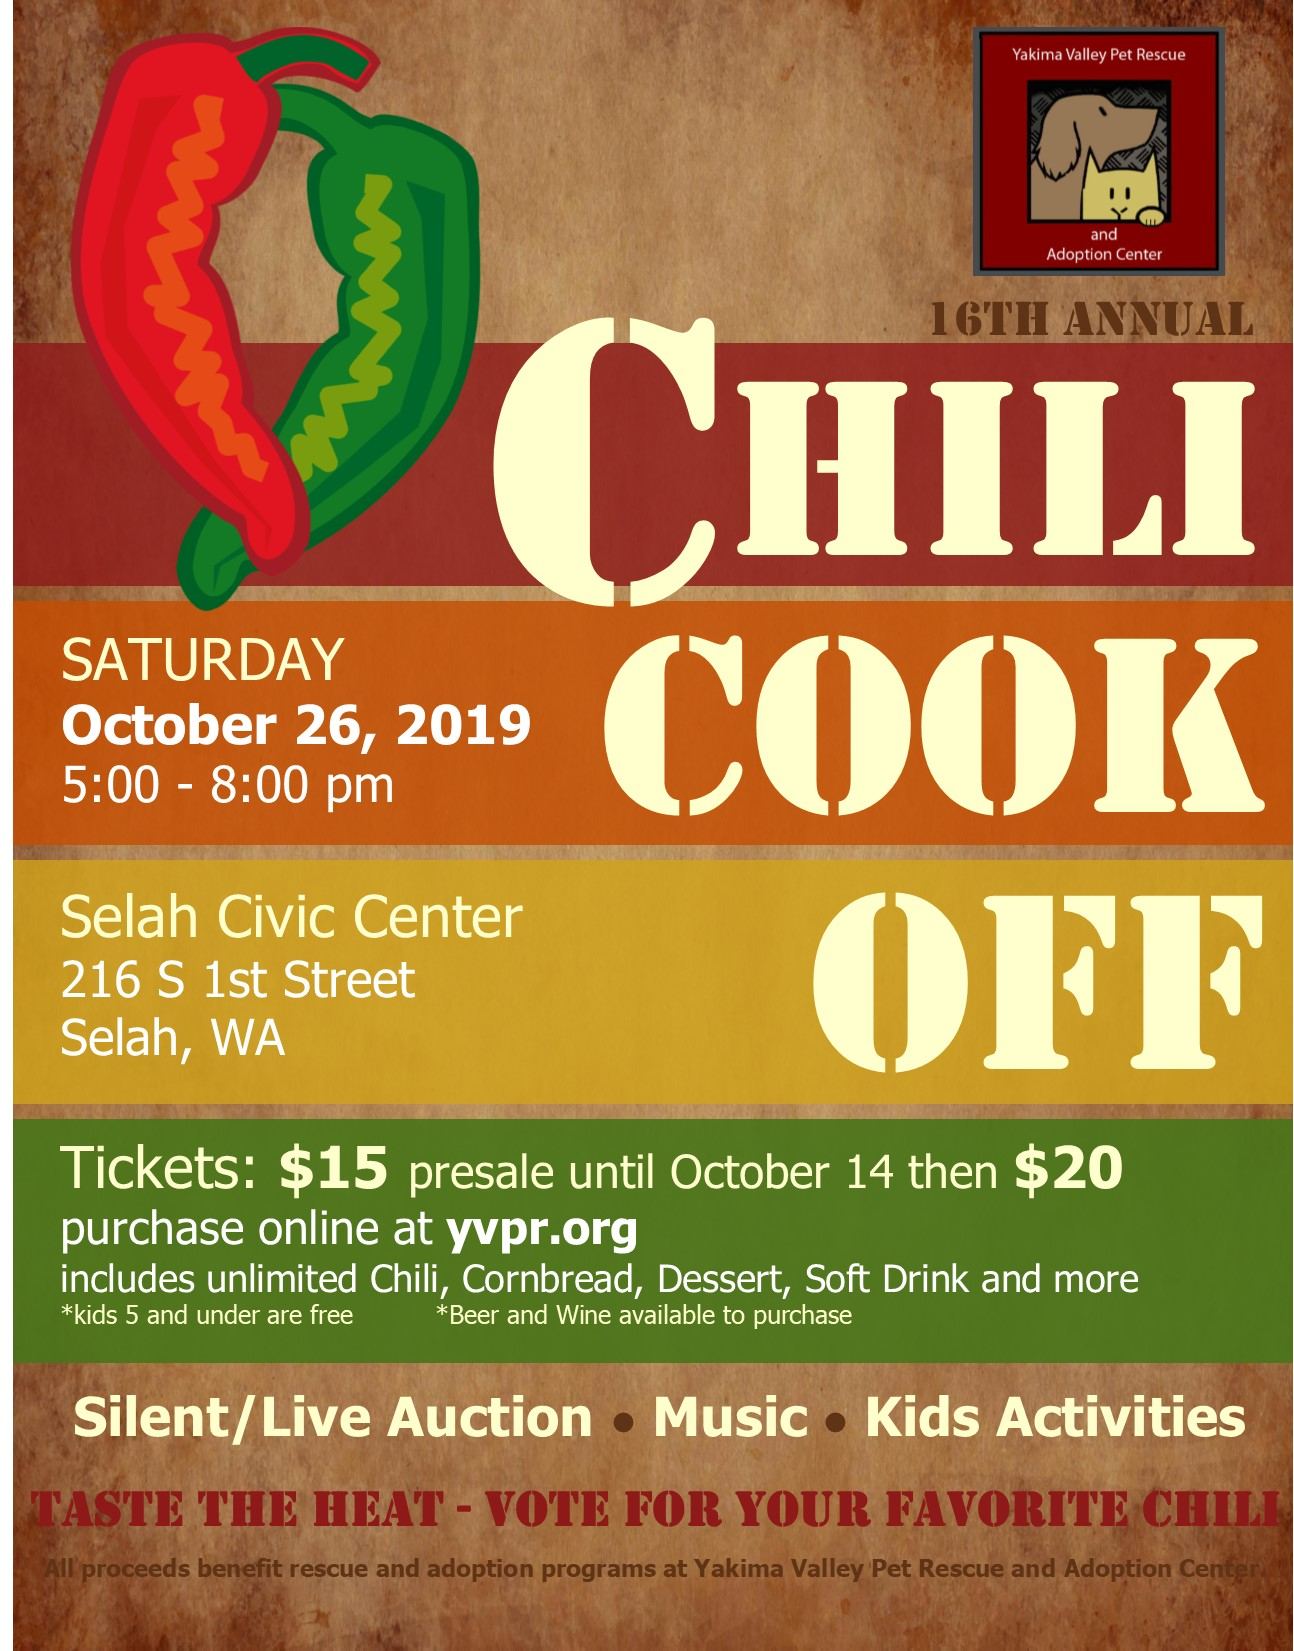 Click image to purchase your tickets online!